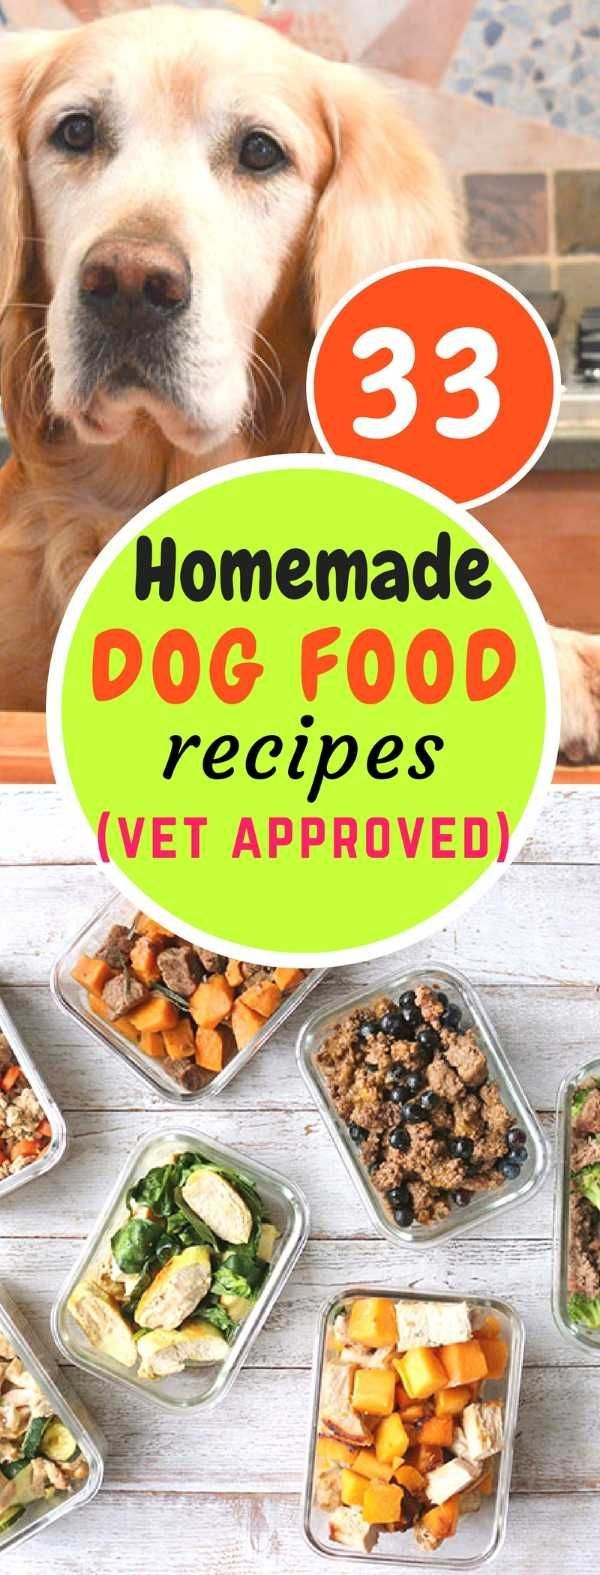 33 Best Homemade Dog Food Recipes That Are Vet Approved Dog Food